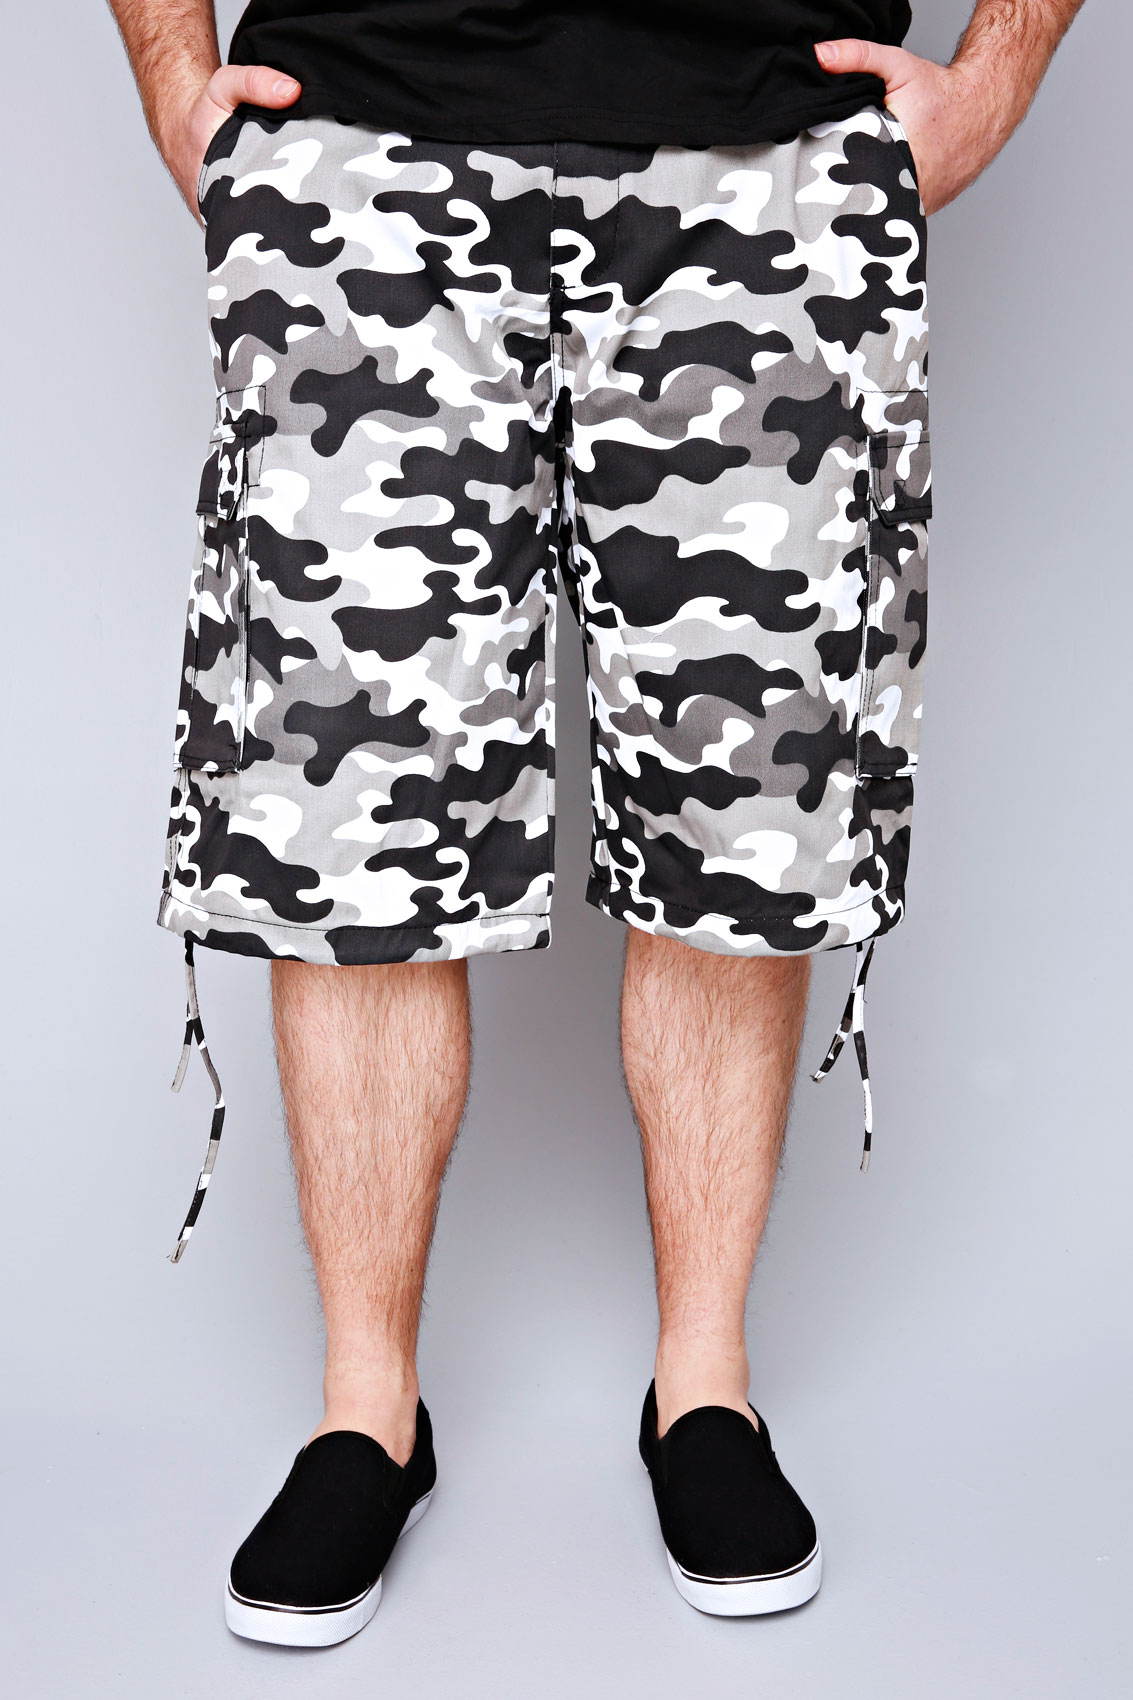 Find great deals on eBay for gray white camo shorts. Shop with confidence.